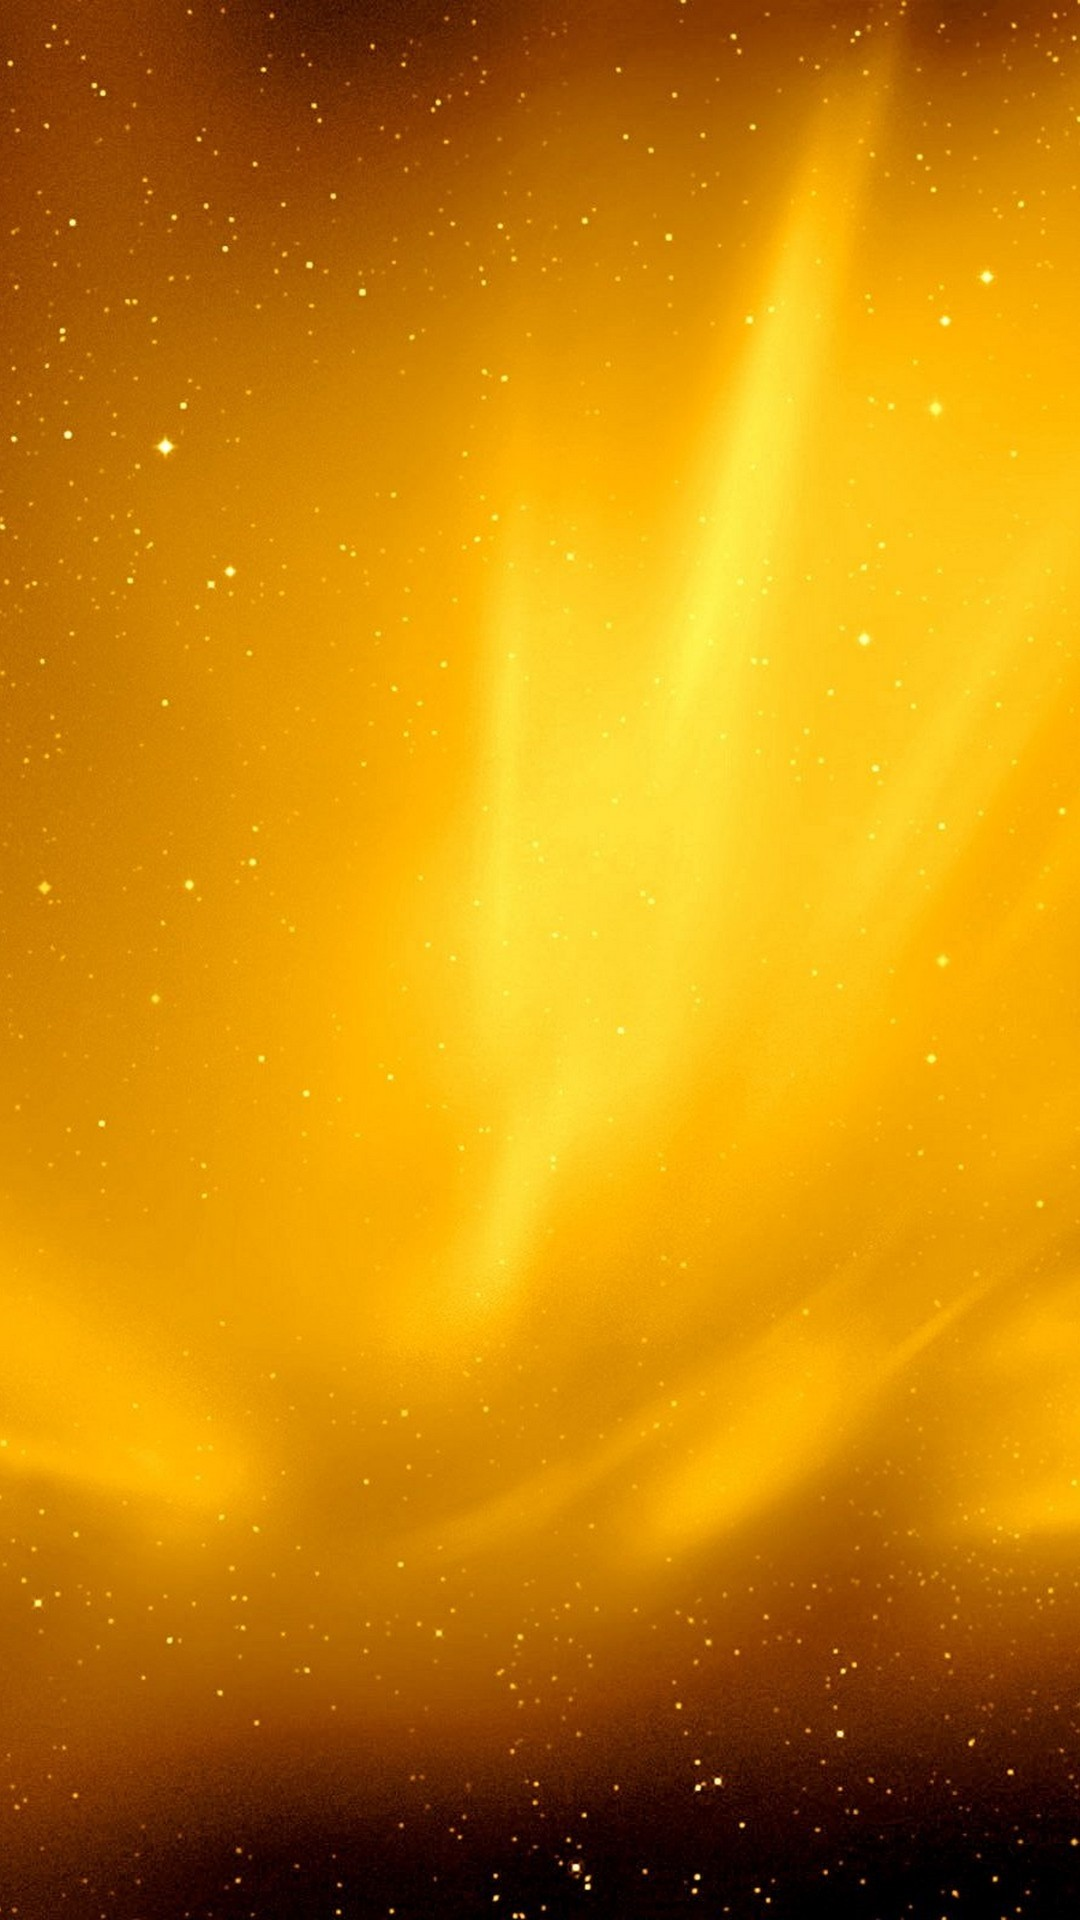 Yellow hd wallpaper for mobile